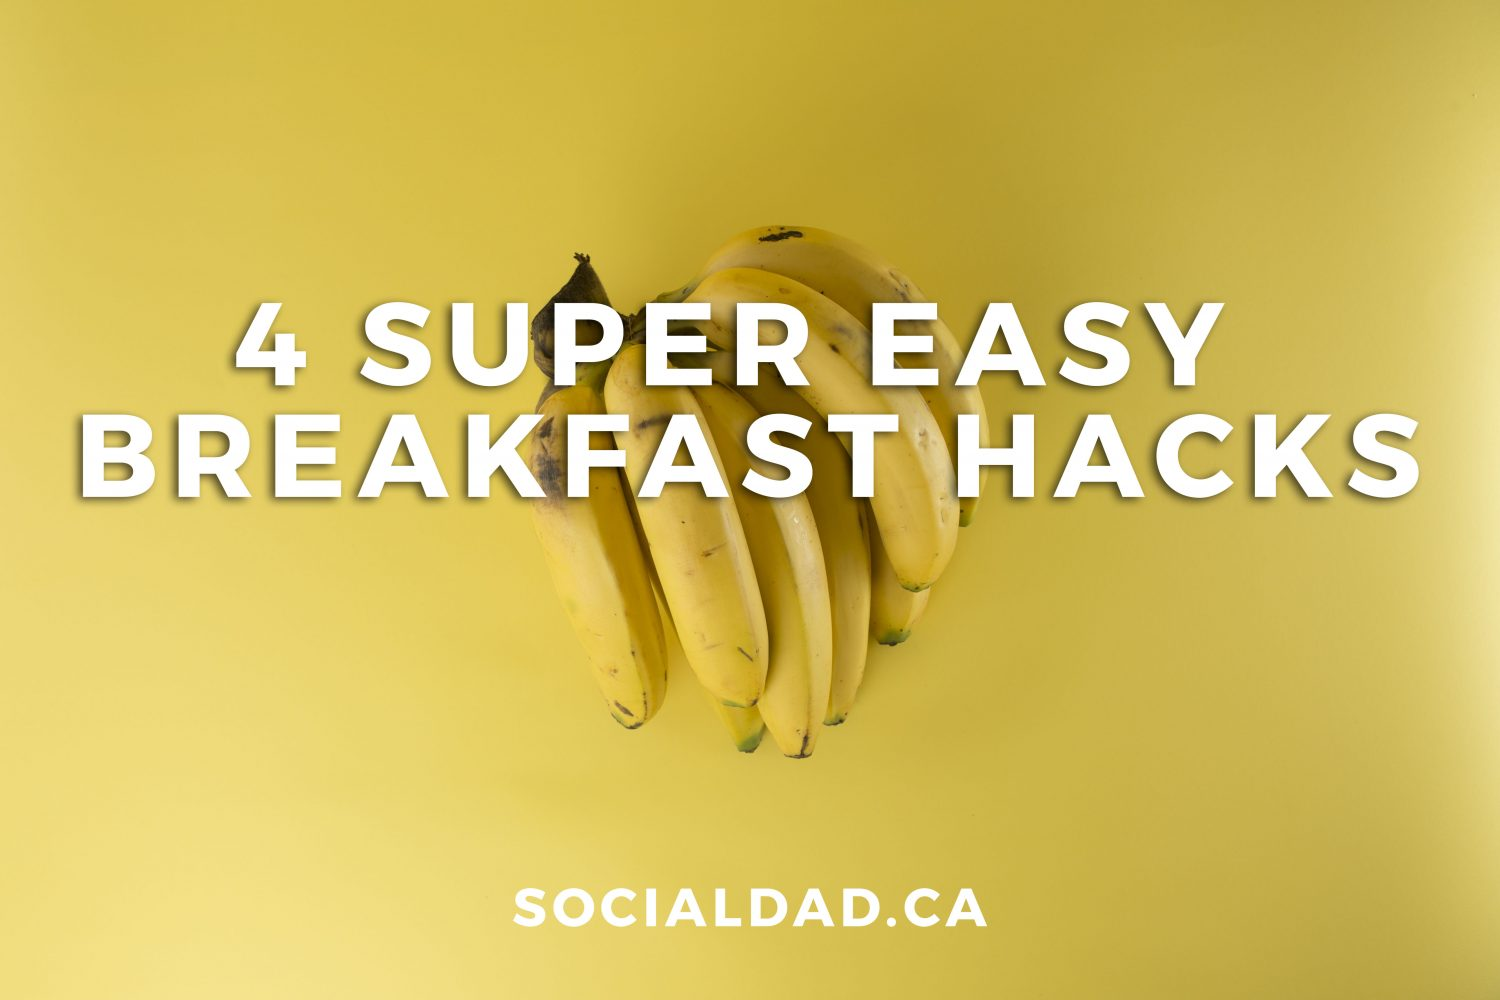 how to bake an egg, avocado egg, healthy breakfast ideas, breakfast diet, recipes, vancouver blog, vancouver sun run, vancouver dieters, dad blog, social dad, james smith, james r.c. smith, canada dad, parenting dad, healthy dad blog, mom blog, mum blog,